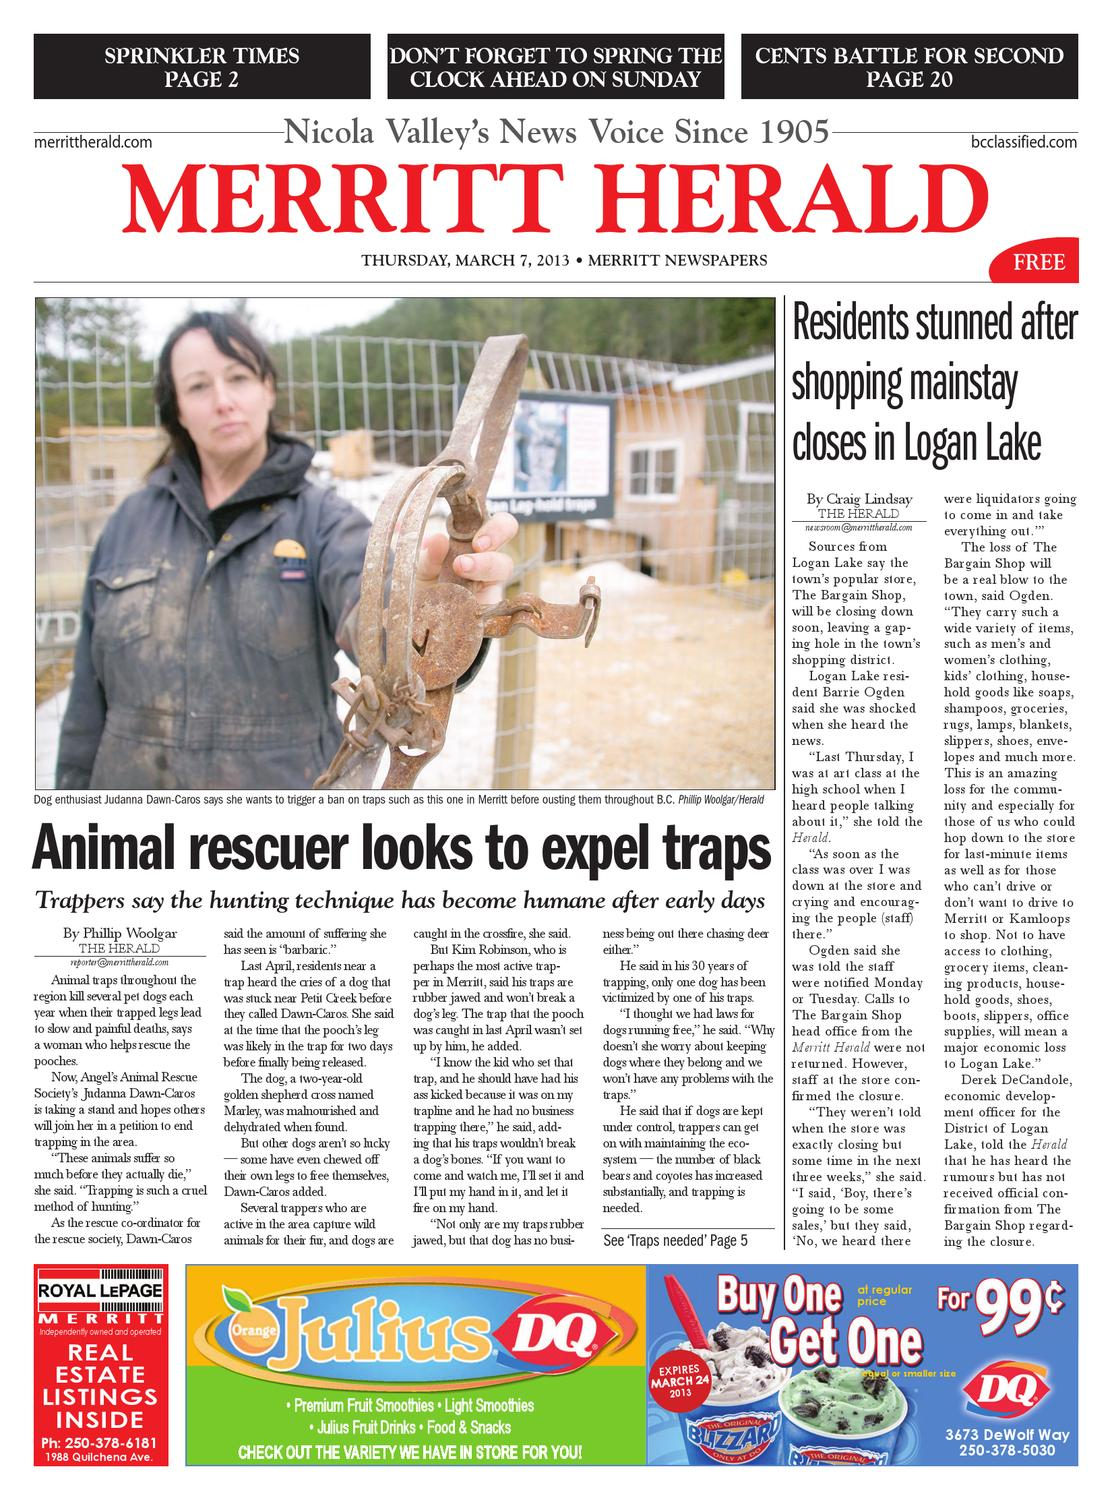 Merritt Herald March 07 2013 By Black Press Issuu Tm551279 Diesel Electric 56 Gage 44 Ton 0440 400 Hp Davenport